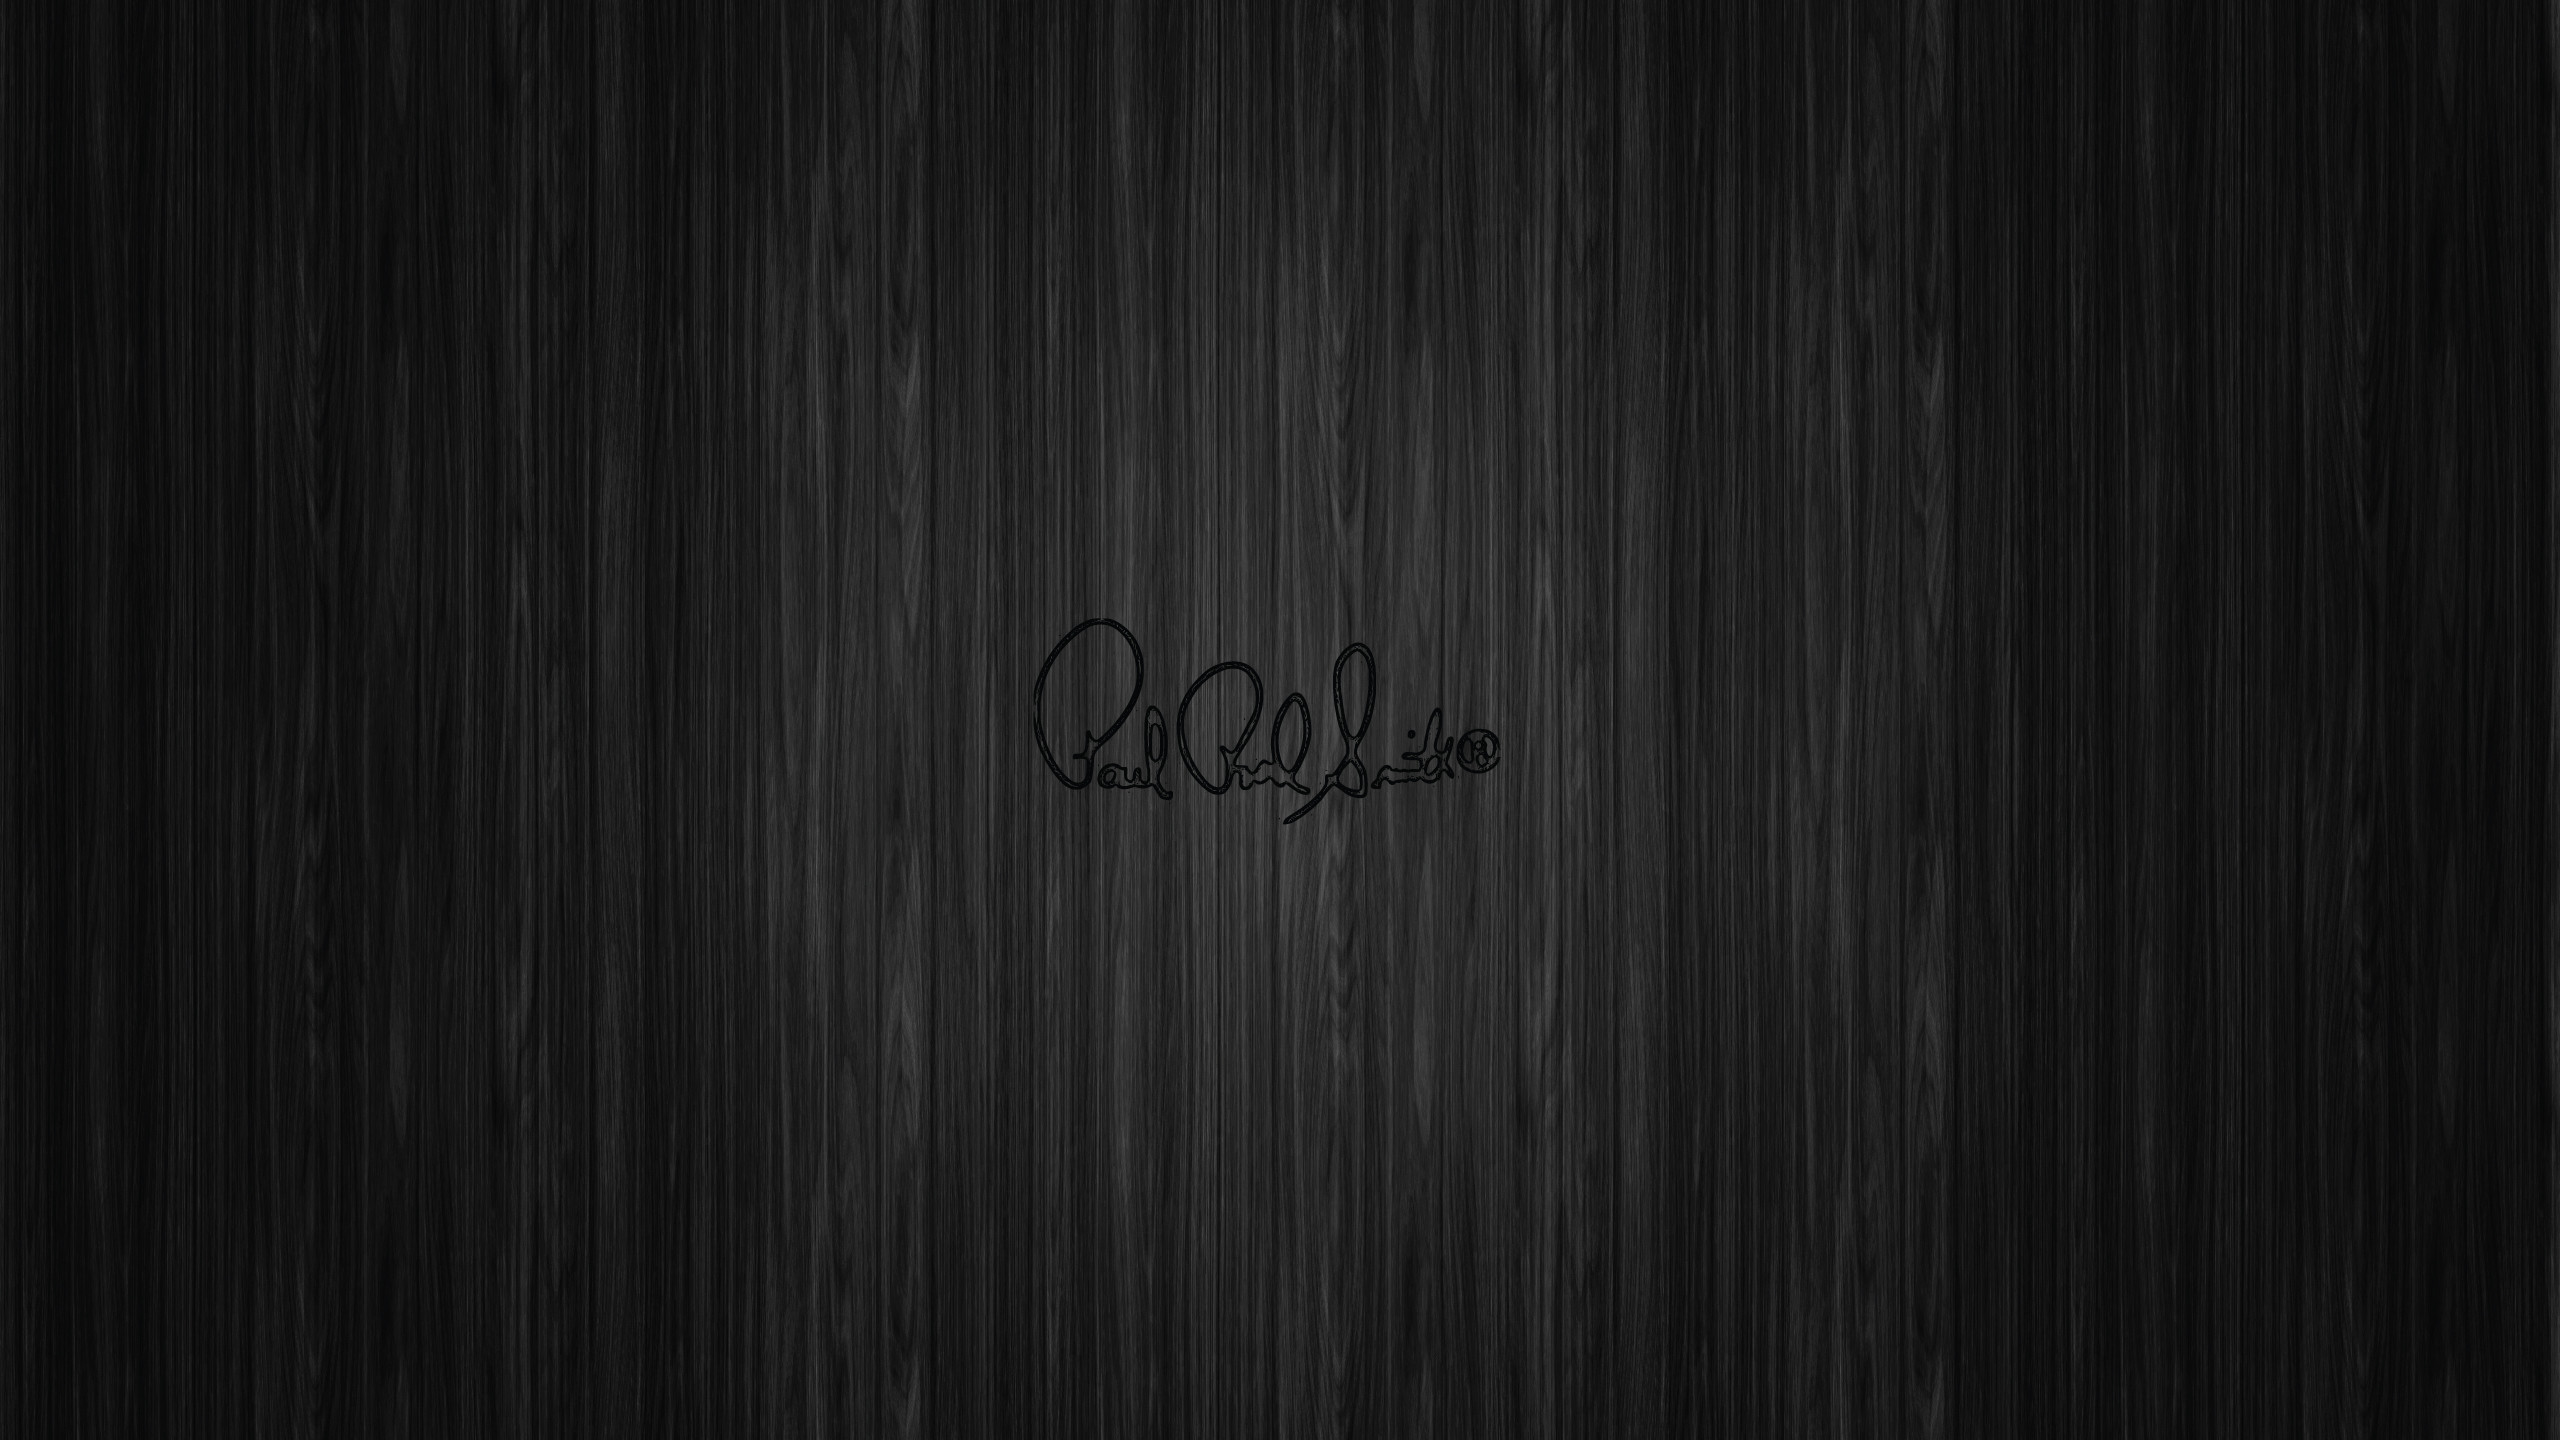 cool idea mate, here's one I did with a wood image and fiddling with the PRS  logo in illustrator (vectorising it).